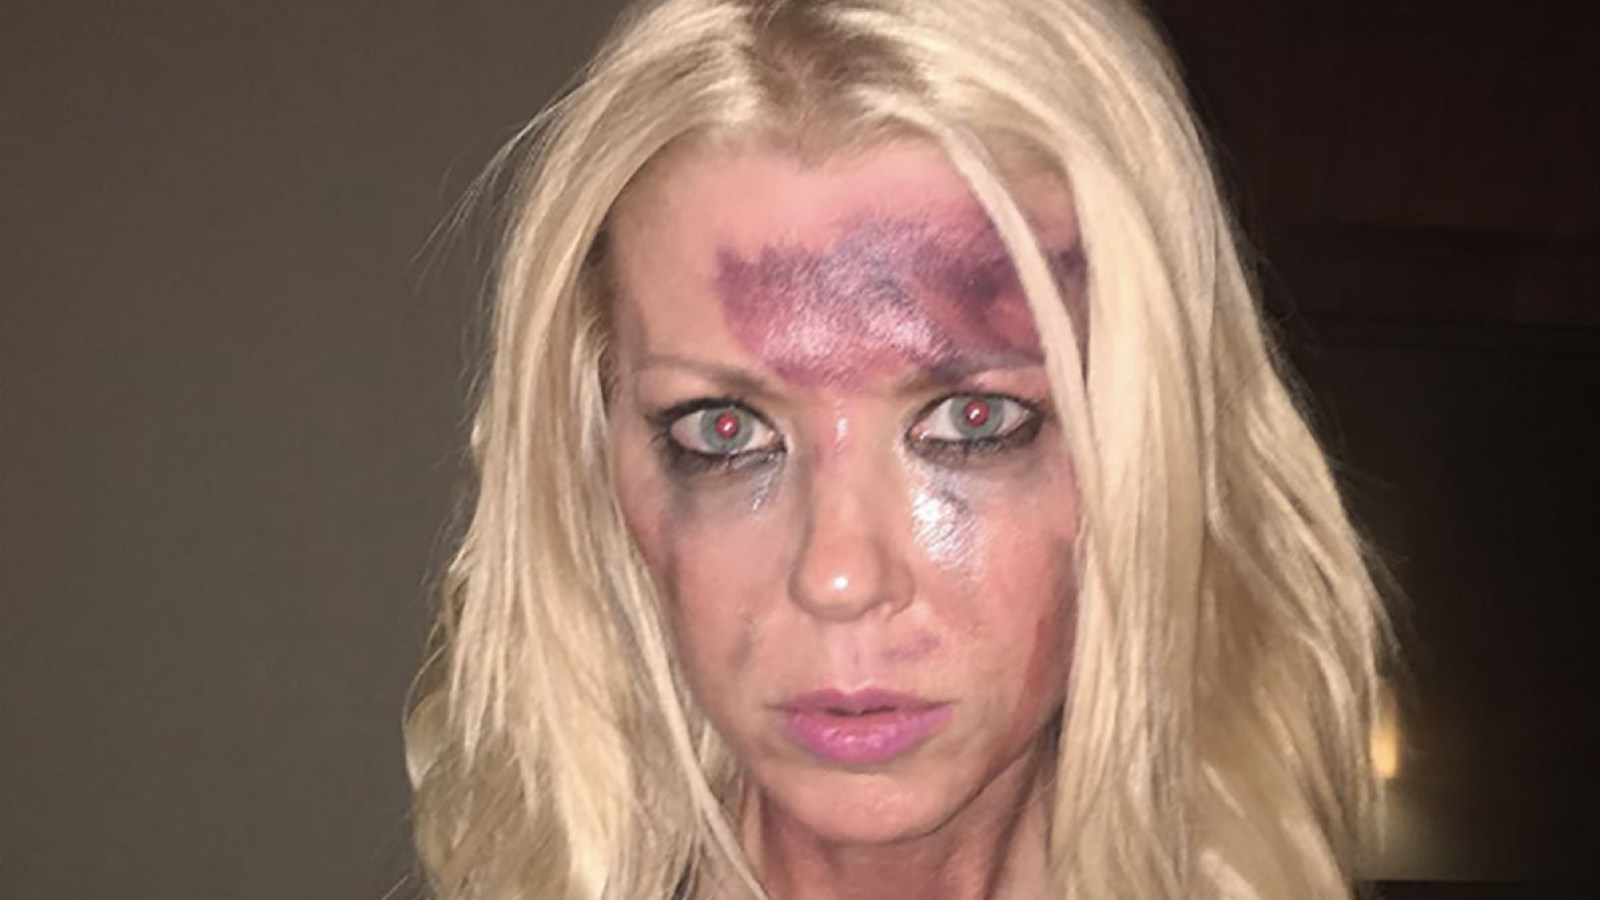 tara reid posts horrifying photo of herself looking battered and bruised